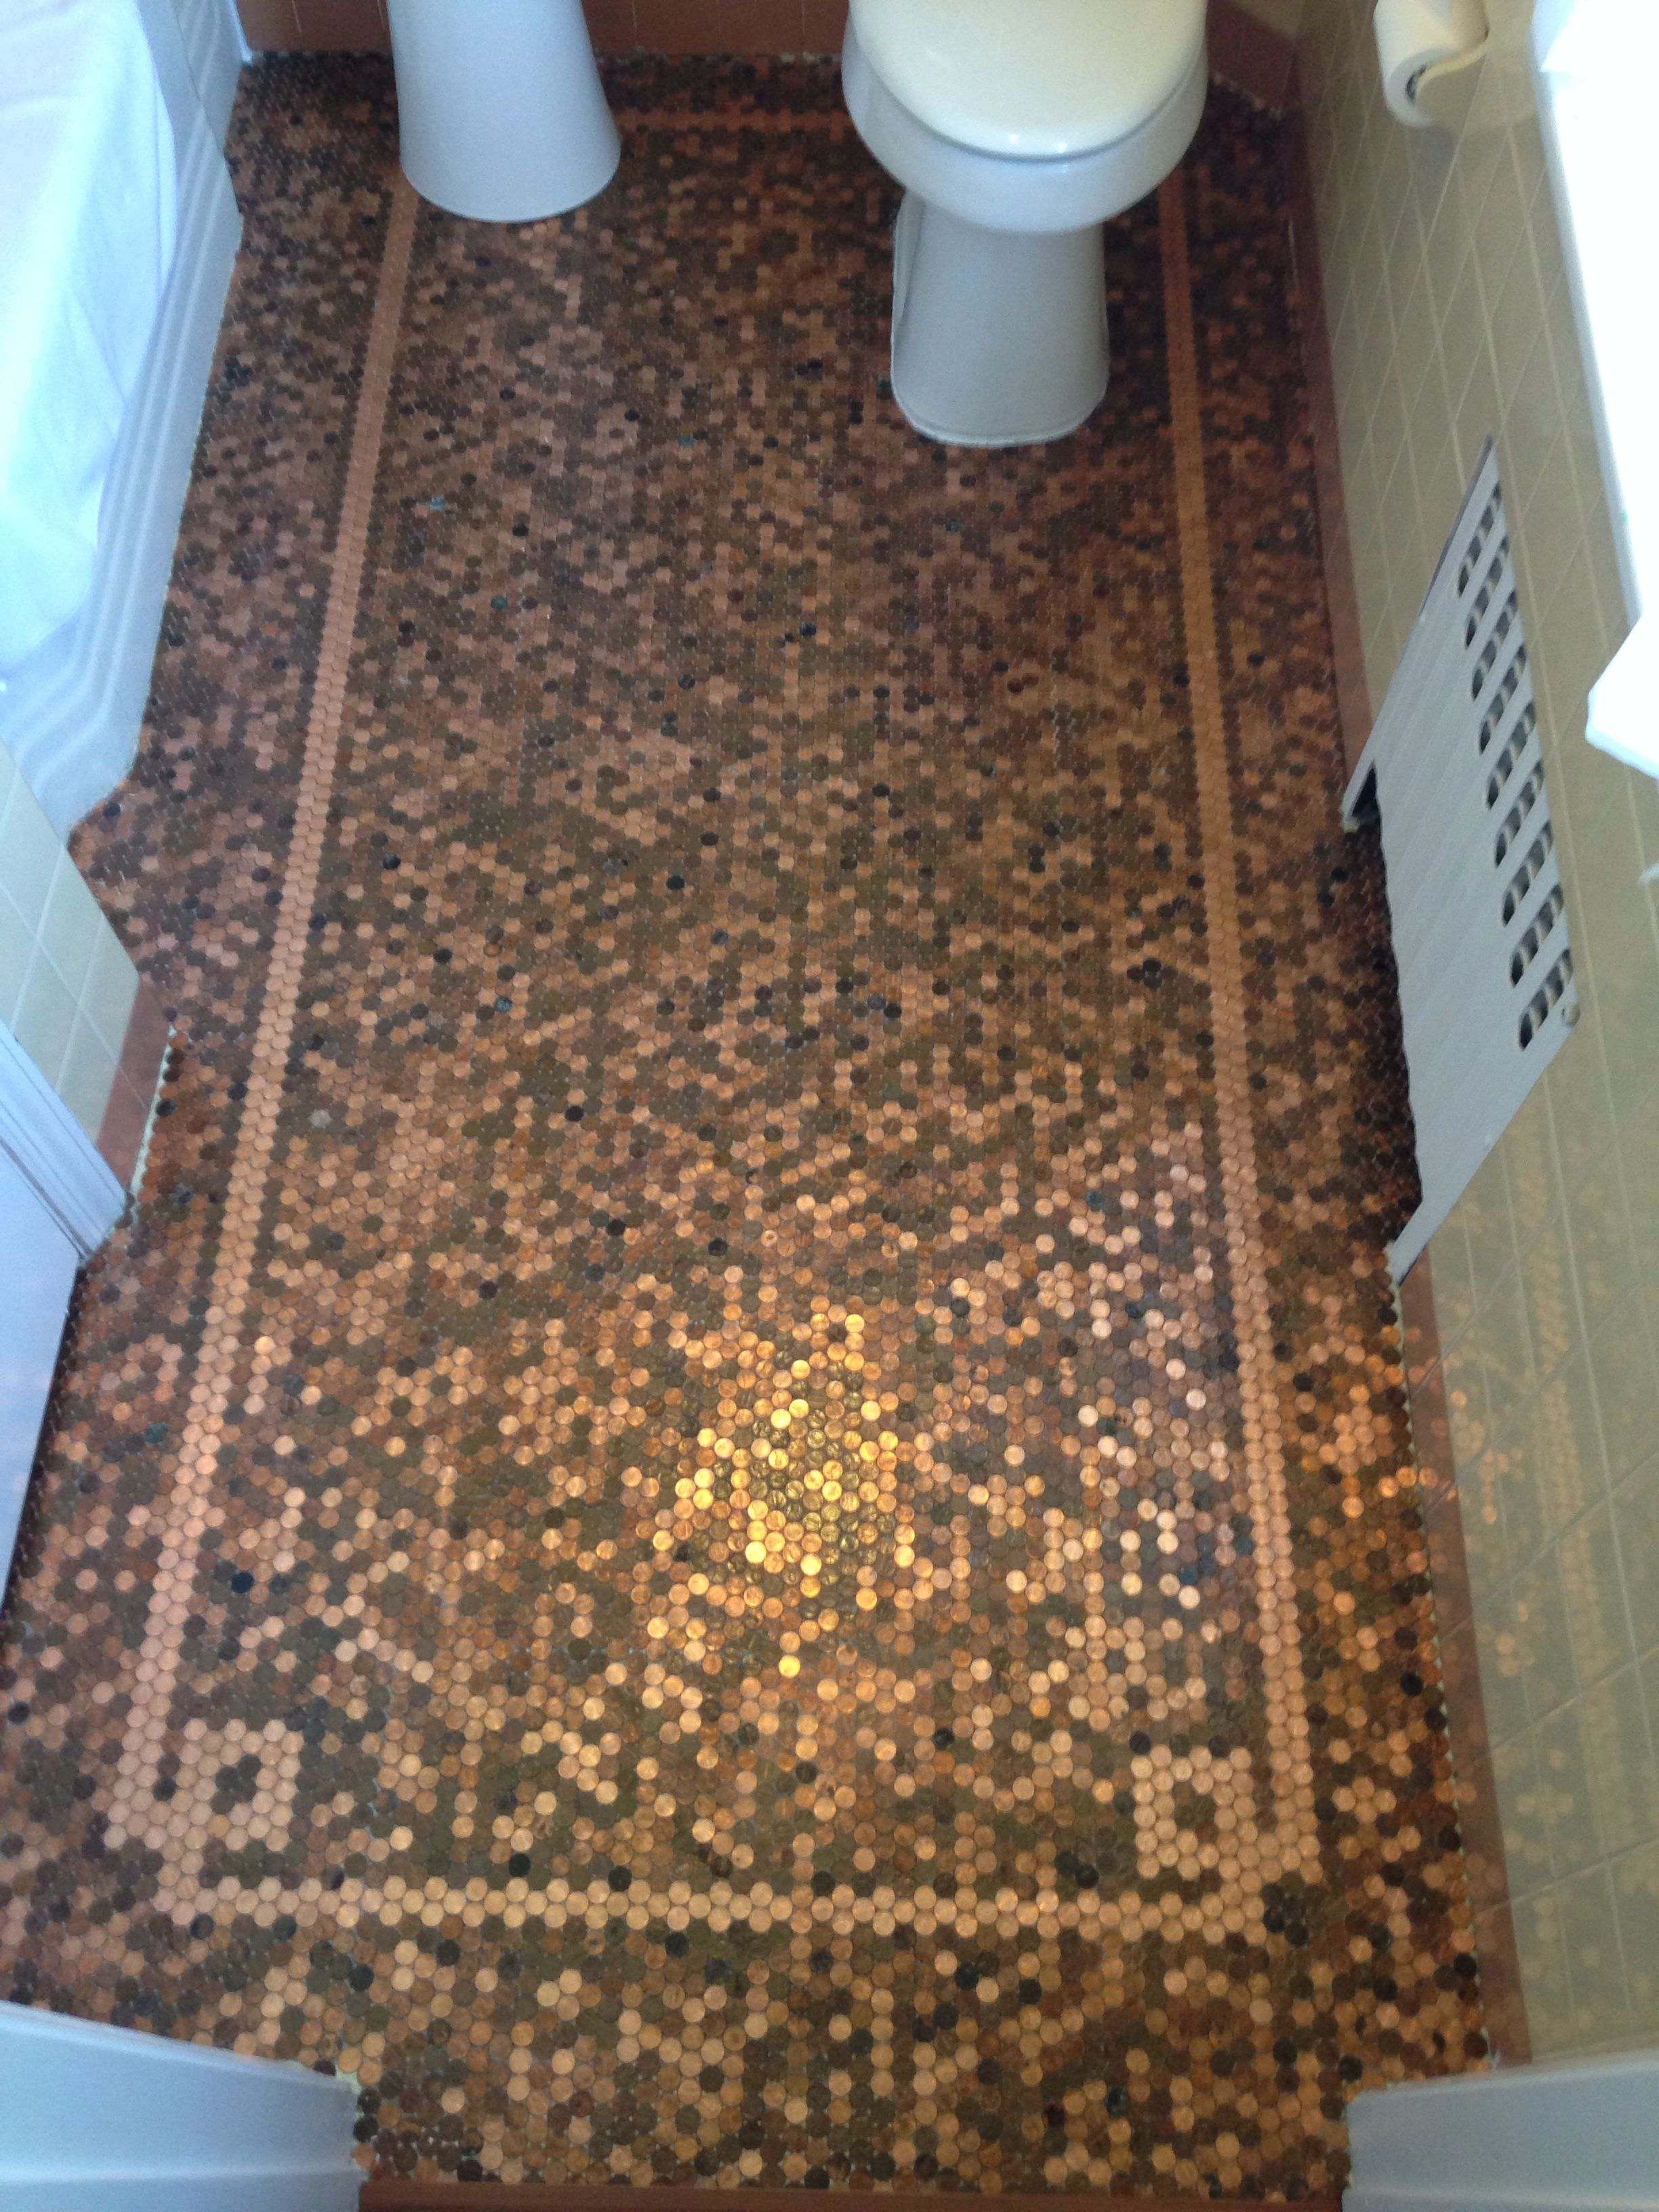 My Newly Installed Penny Tile Floor Mosaic I Love This Penny Work Penny Tile Floors Penny Floor Designs Penny Floor